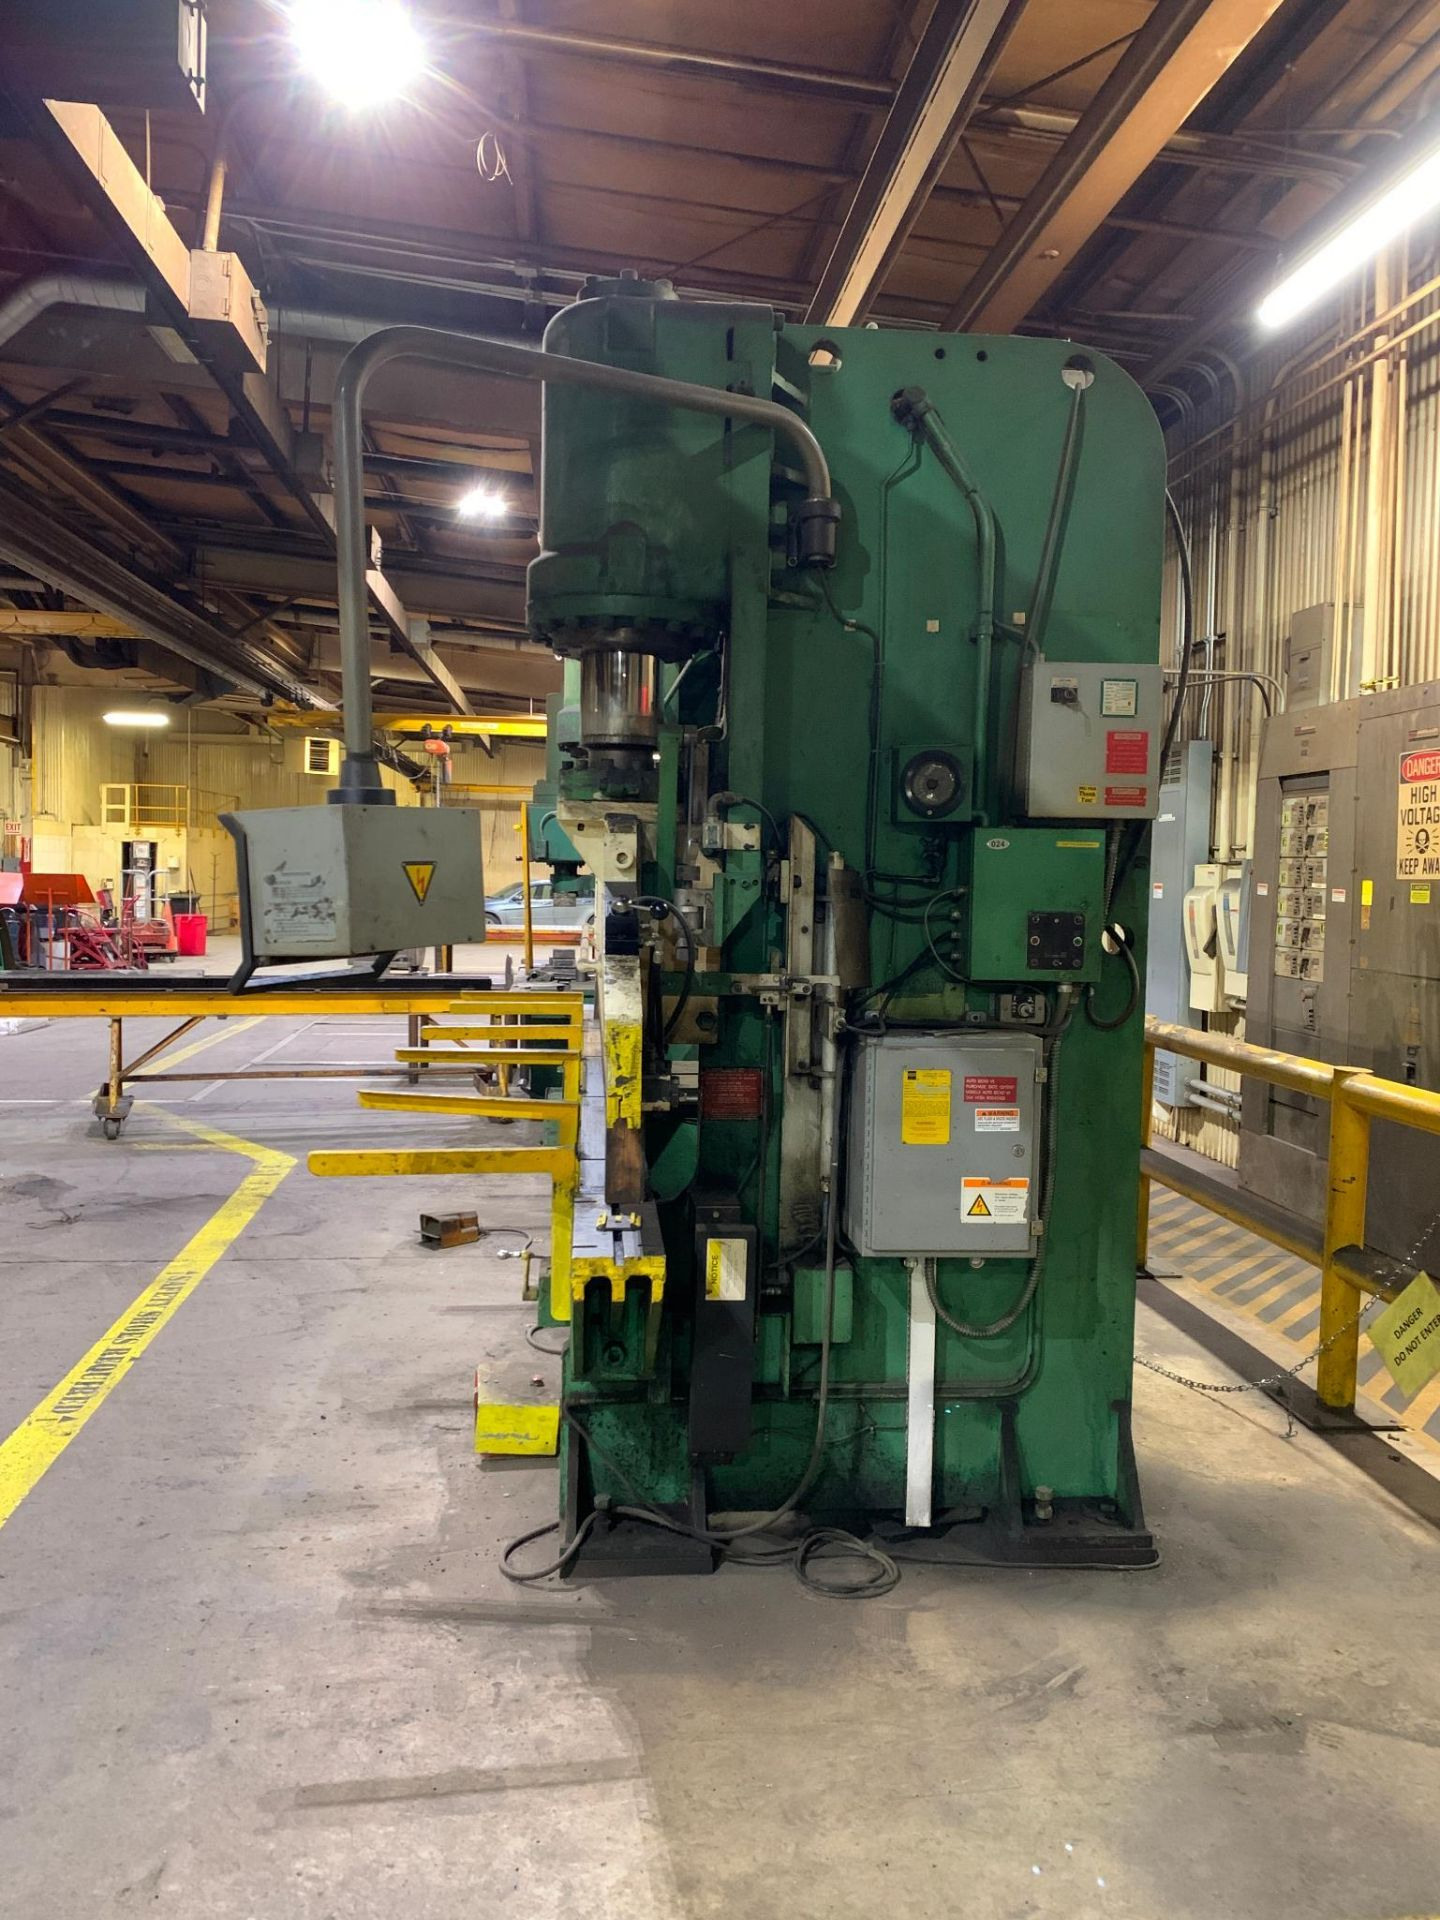 Chicago Dries & Krump Hydraulic Press Brake With: Hurco Autobend 7 Backgauge Control 200 Ton x 16' M - Image 3 of 41